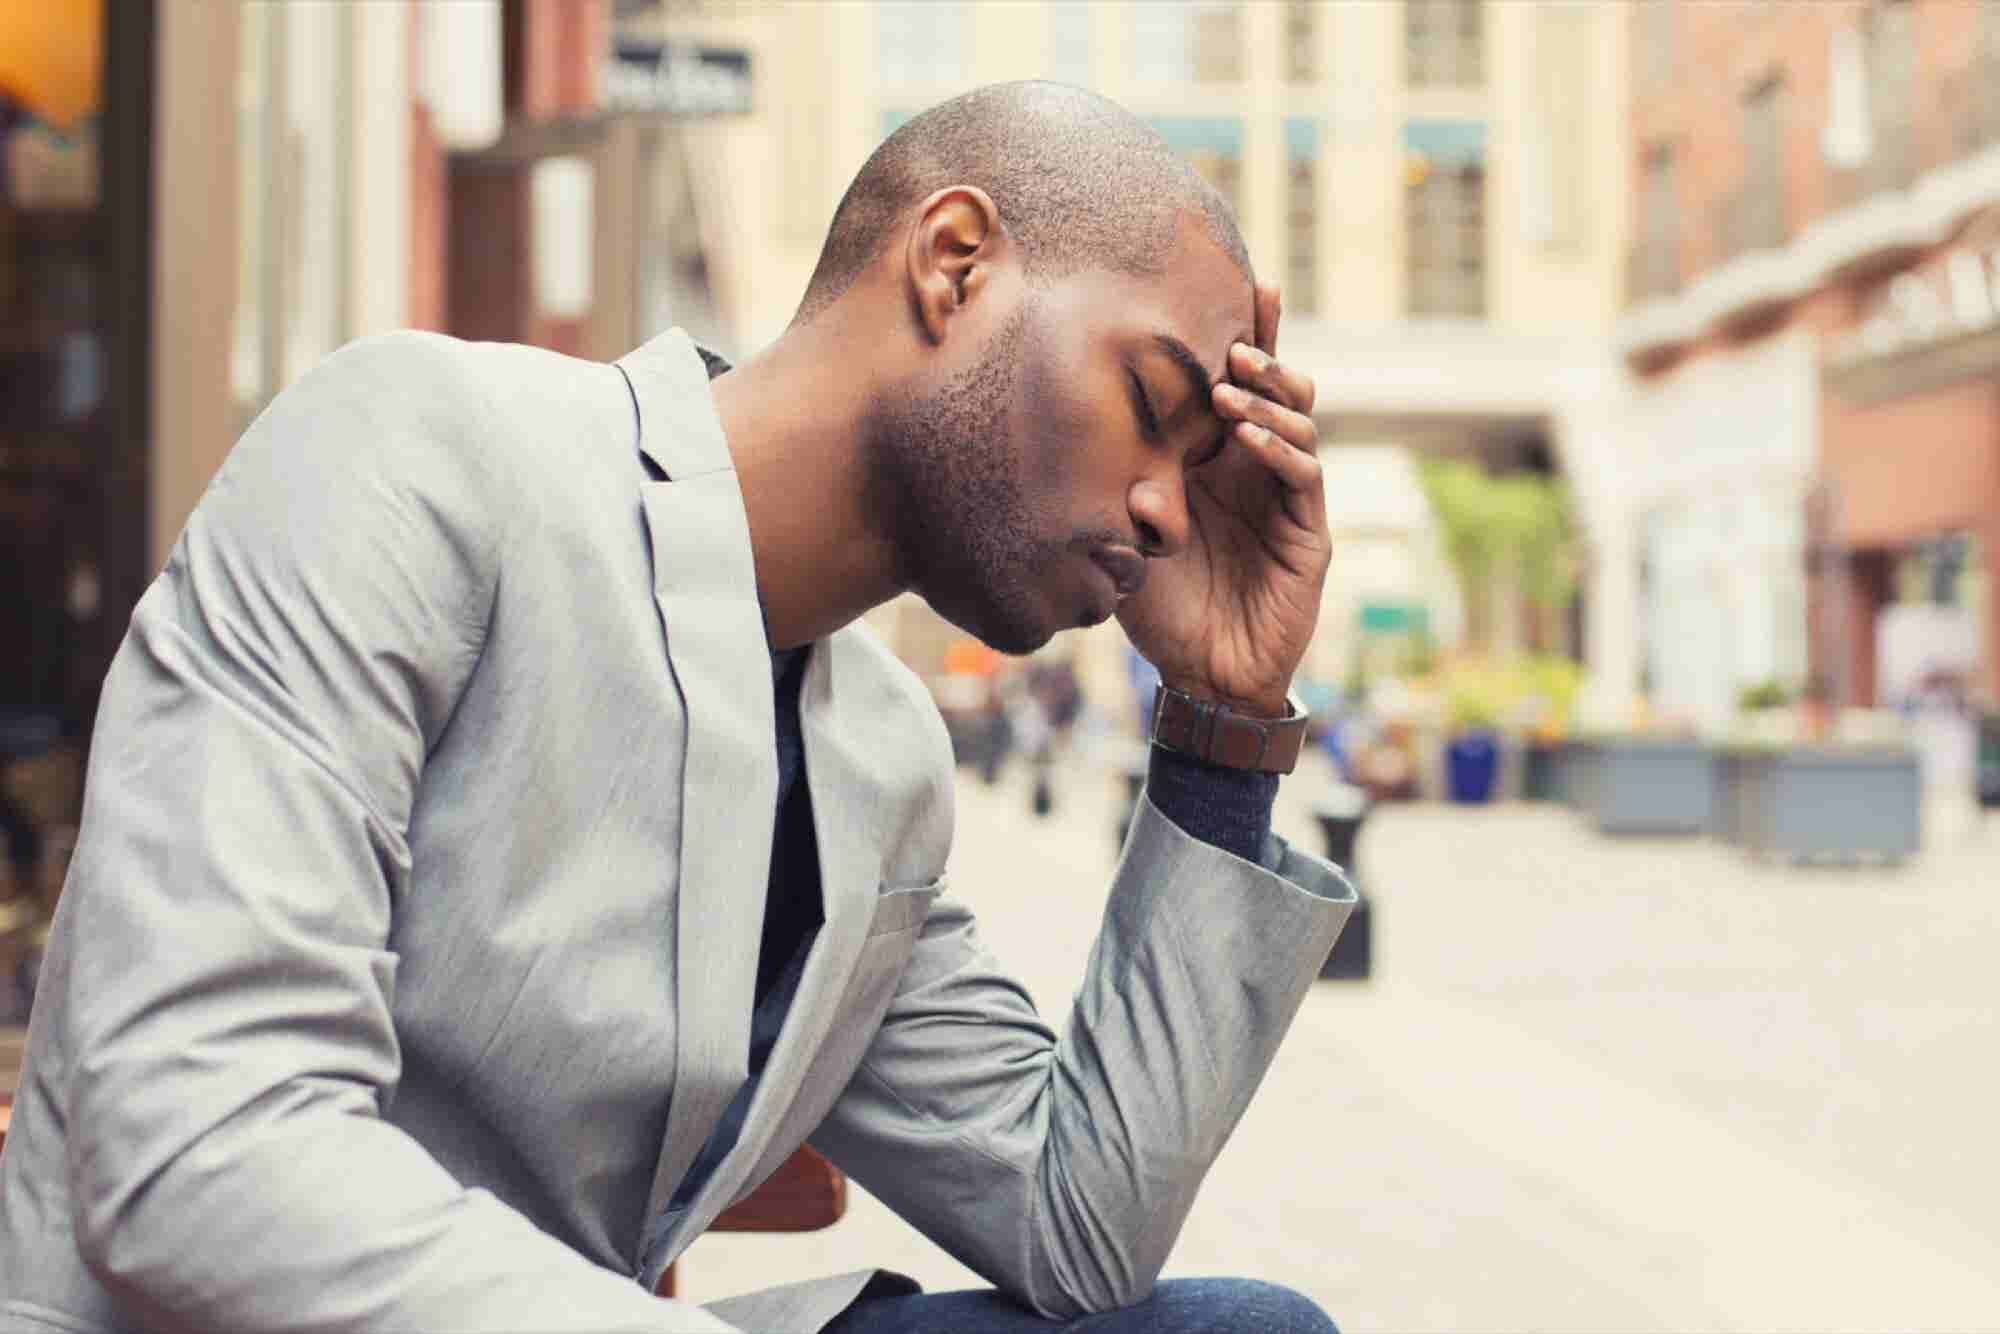 6 Ways to Curb Jet Lag and Travel Fatigue